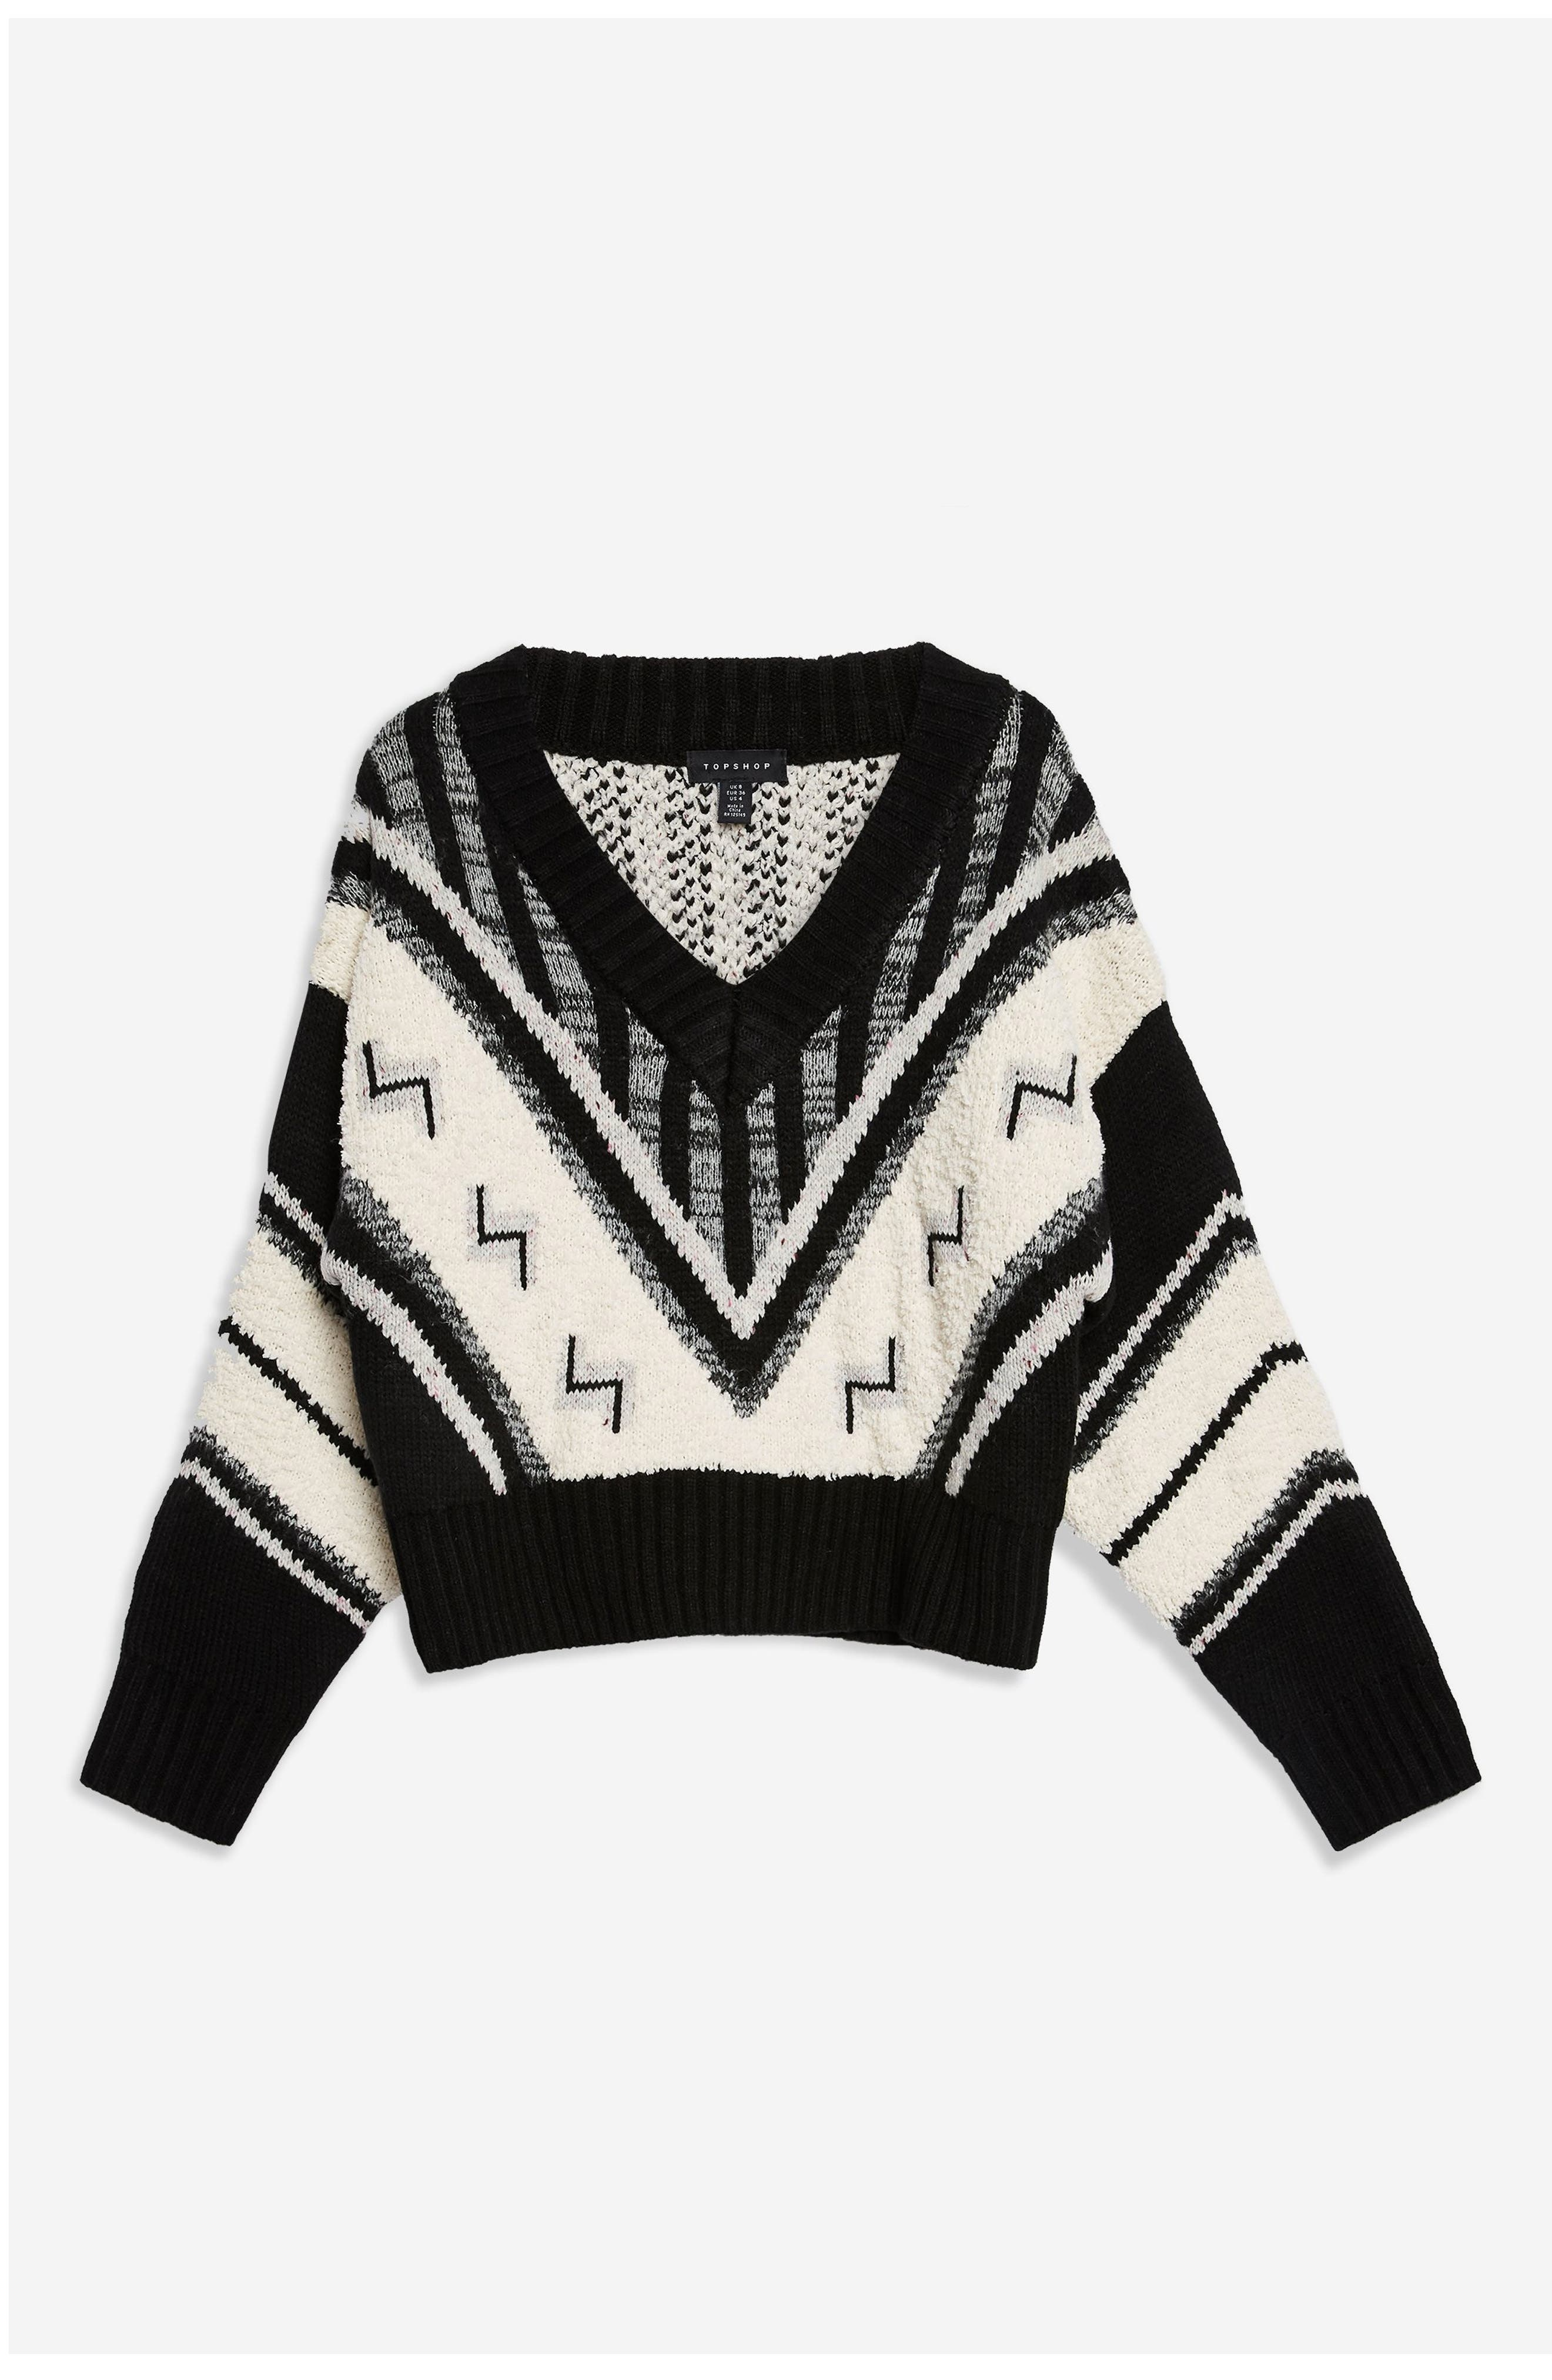 Aztec Rock 'n' Roll Sweater,                             Alternate thumbnail 4, color,                             BLACK MULTI